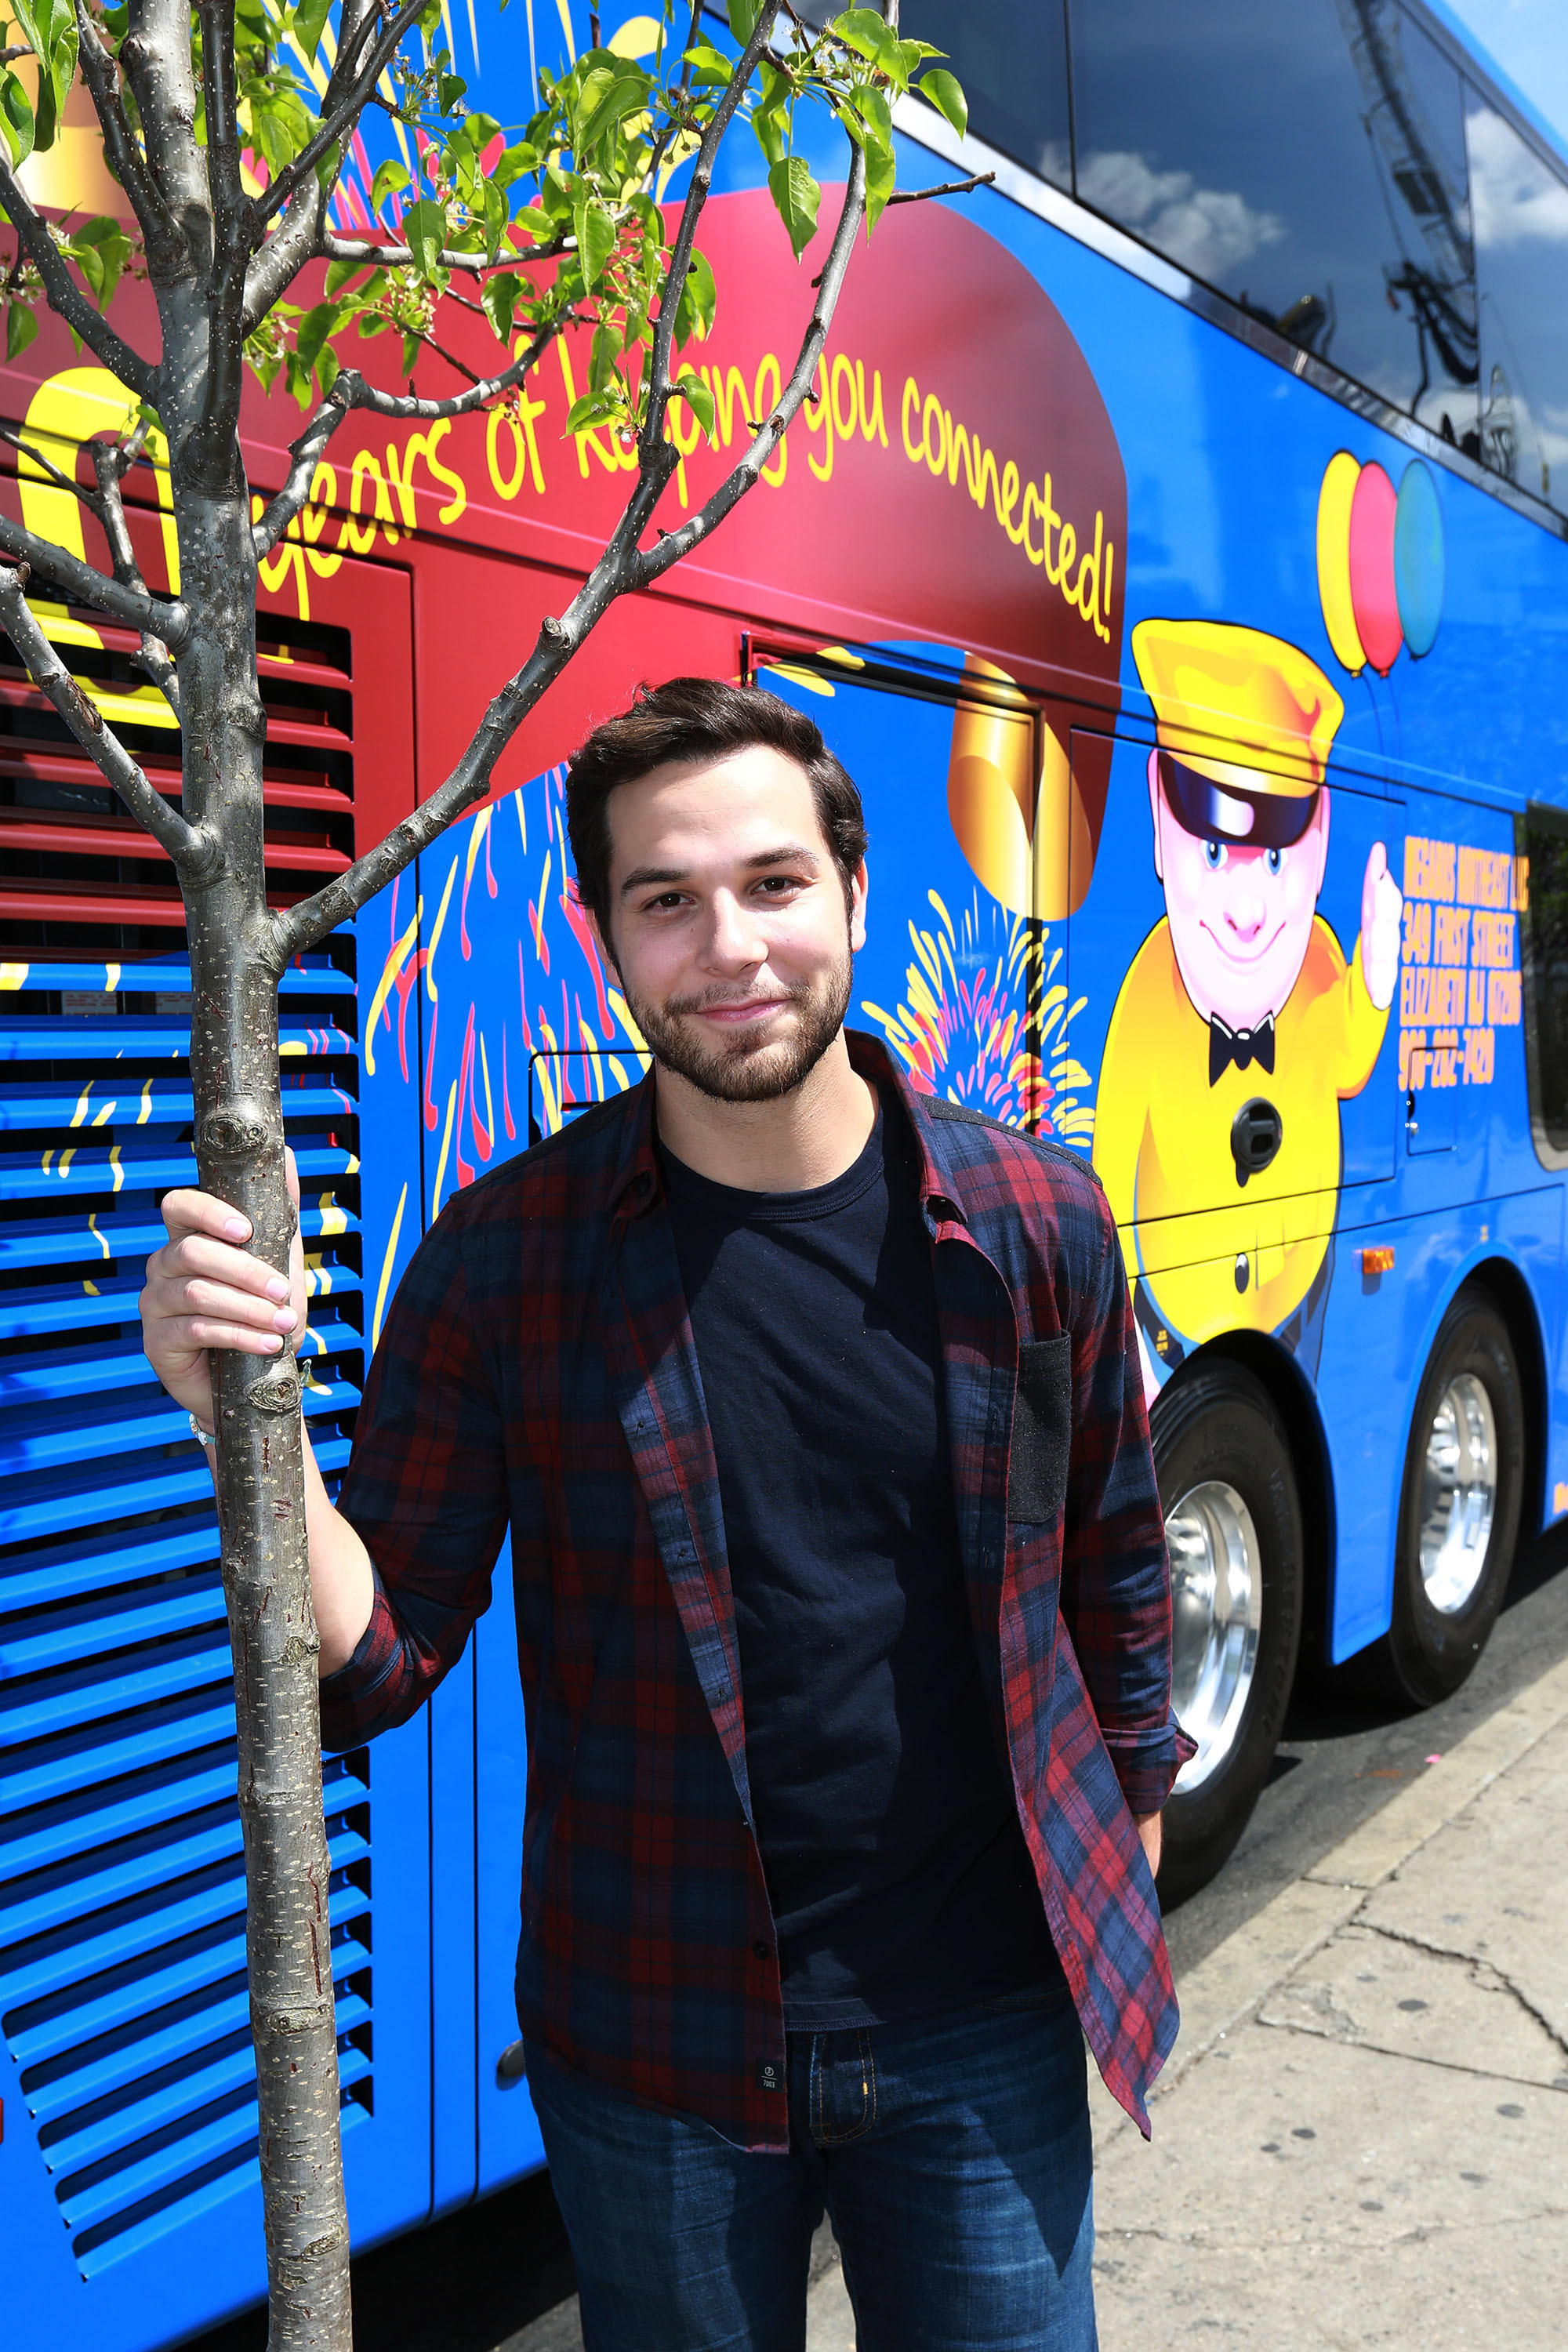 Skylar Astin on why he cares about protecting the environment: